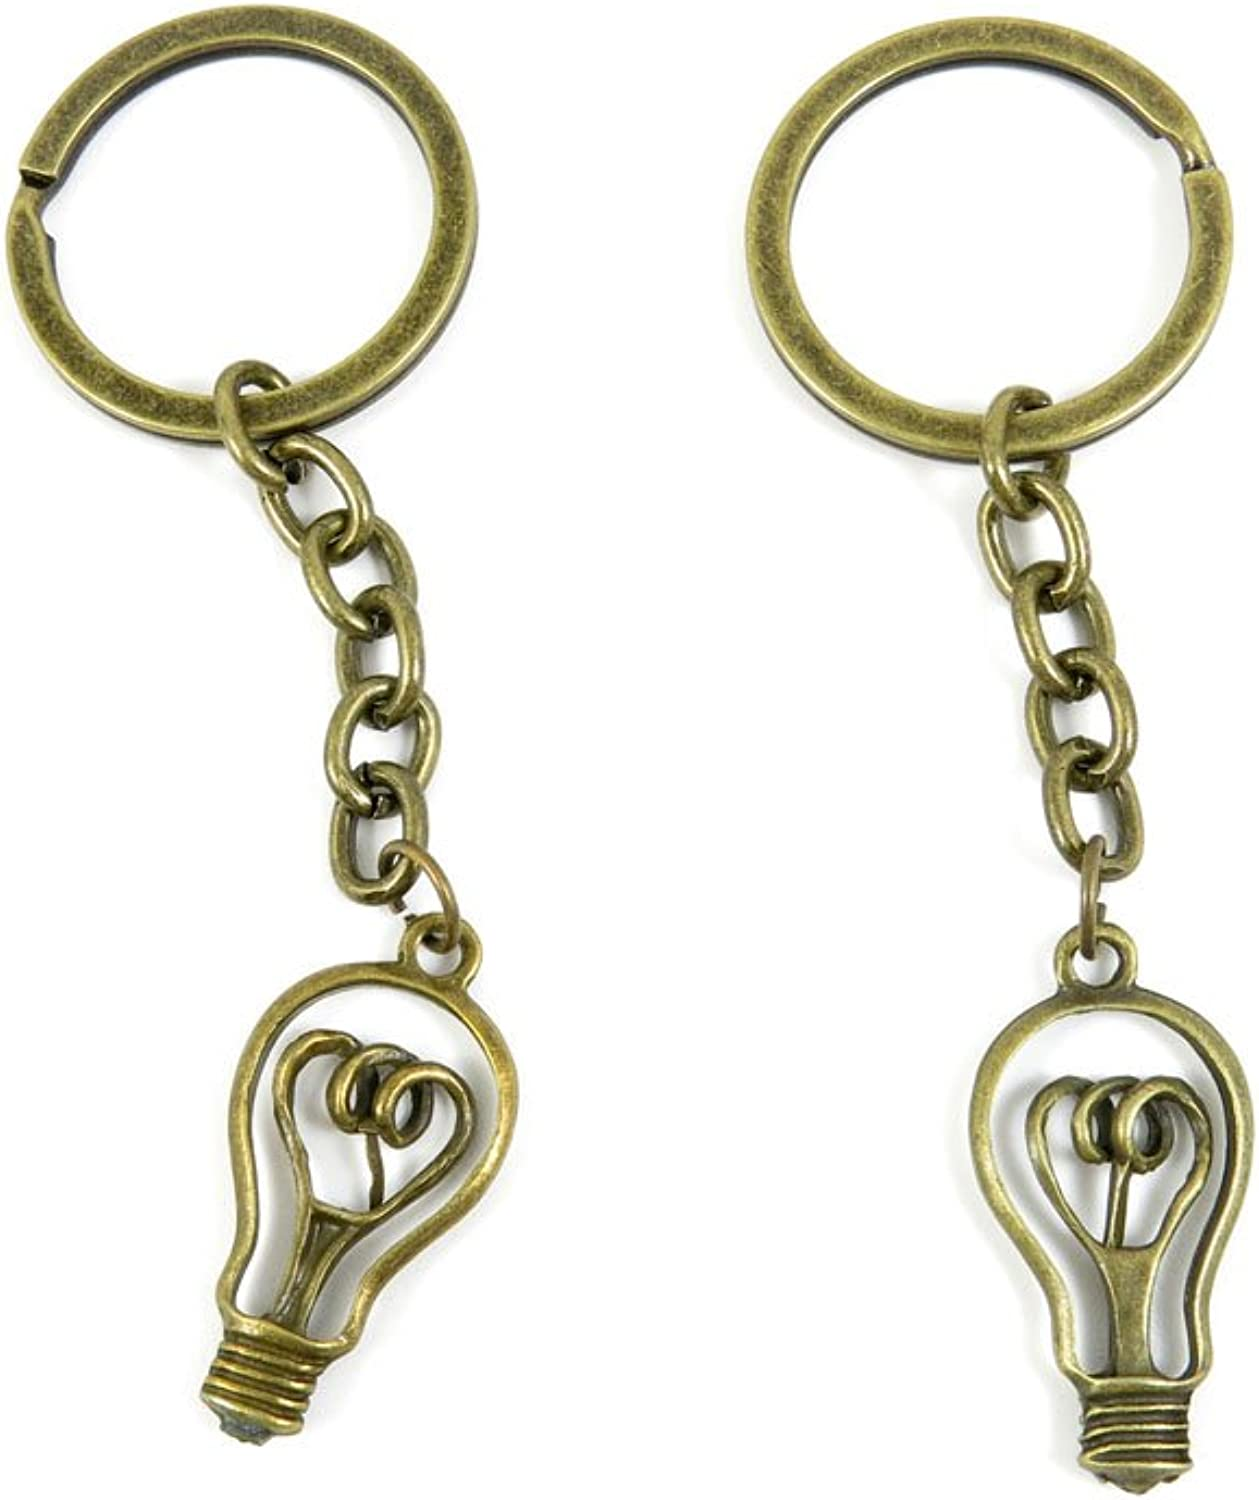 180 Pieces Fashion Jewelry Keyring Keychain Door Car Key Tag Ring Chain Supplier Supply Wholesale Bulk Lots D3PG8 Bulb